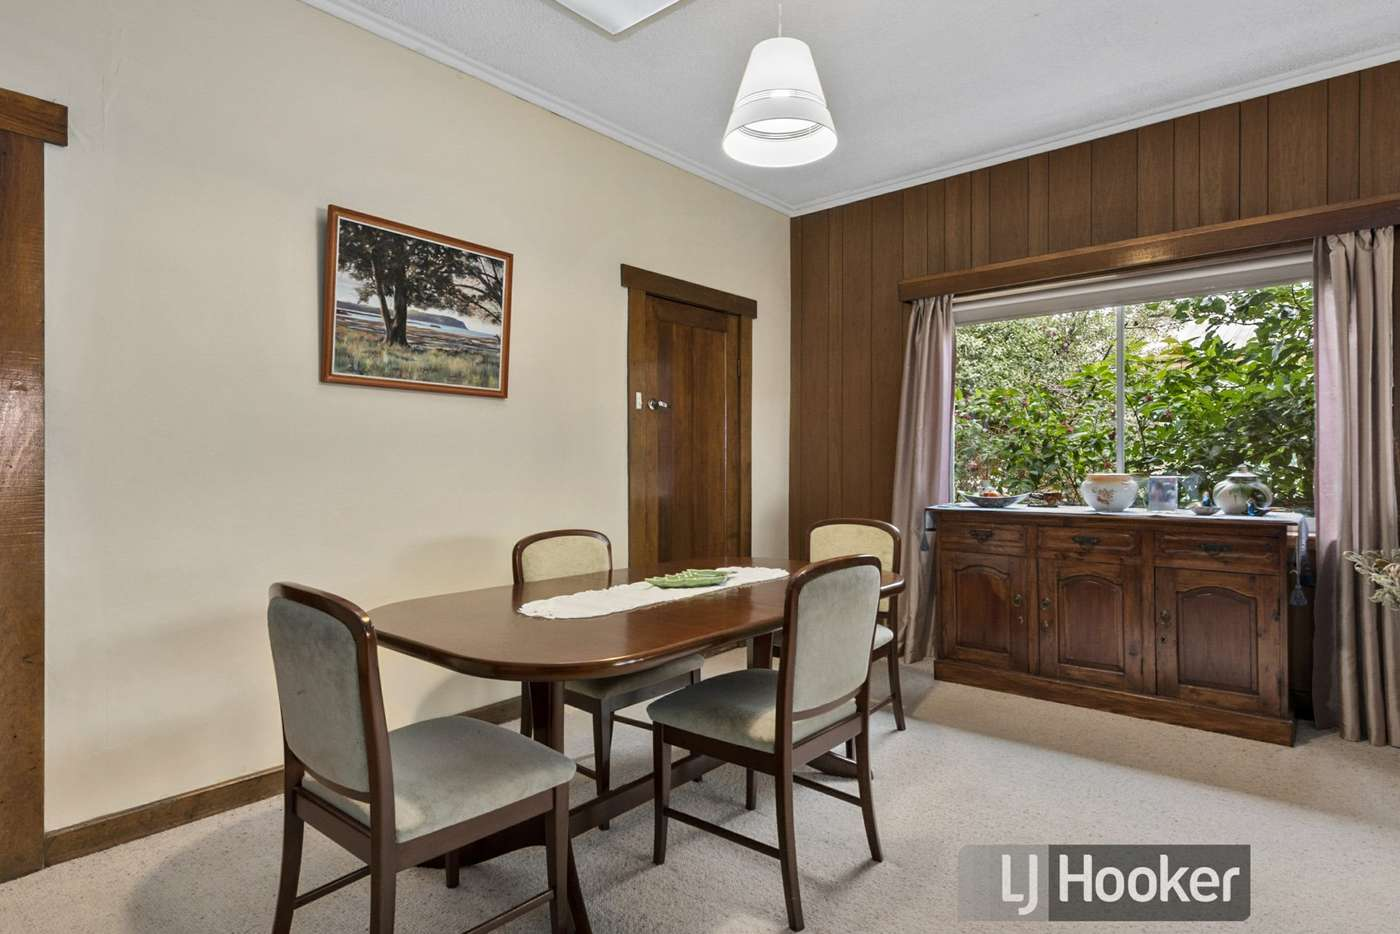 Sixth view of Homely house listing, 6 Park Street, Wynyard TAS 7325